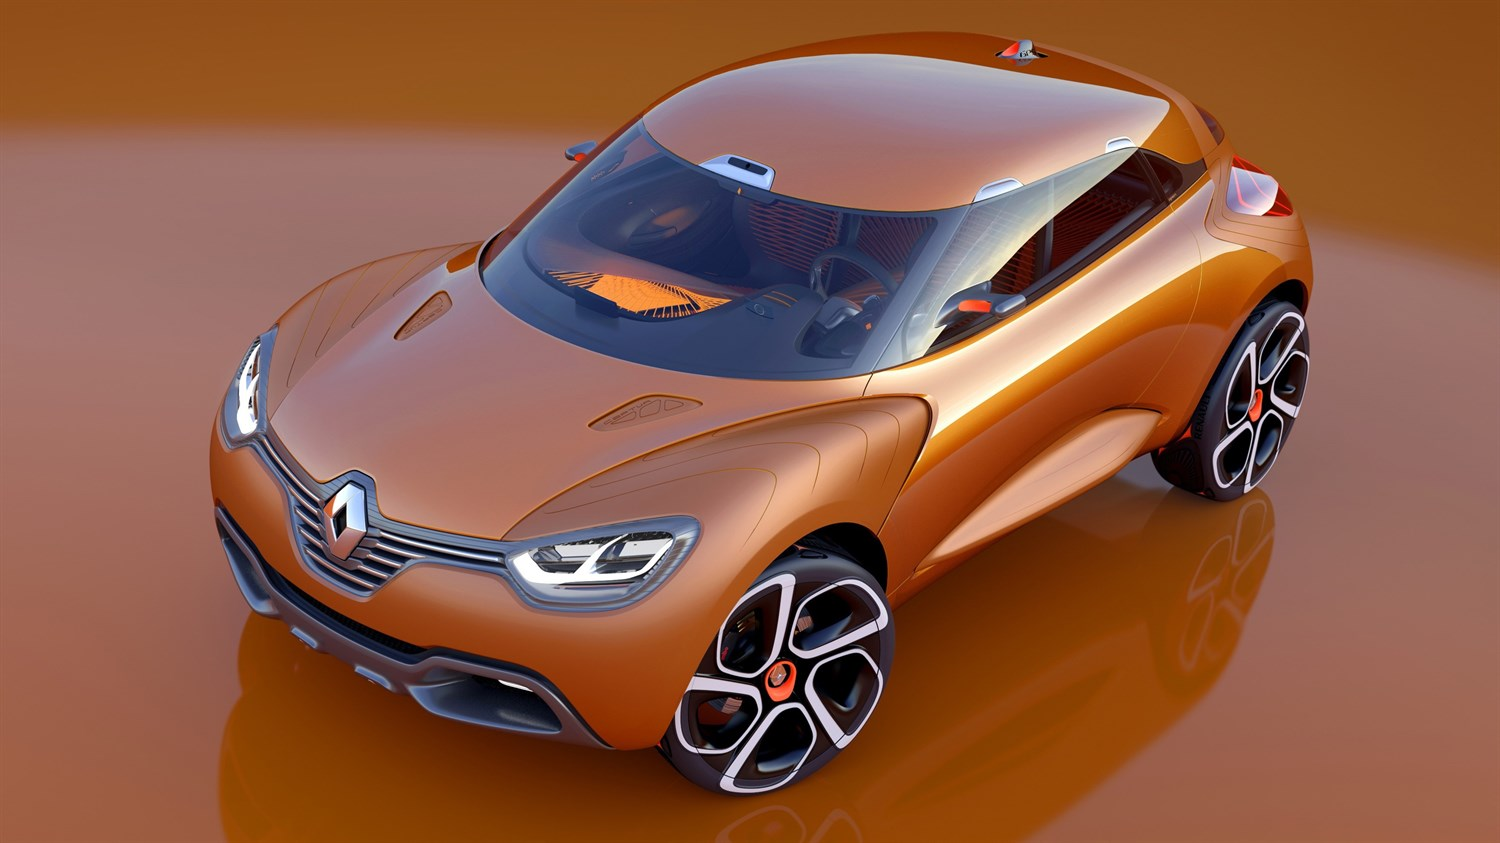 Renault CAPTUR Concept - view of vehicle from above